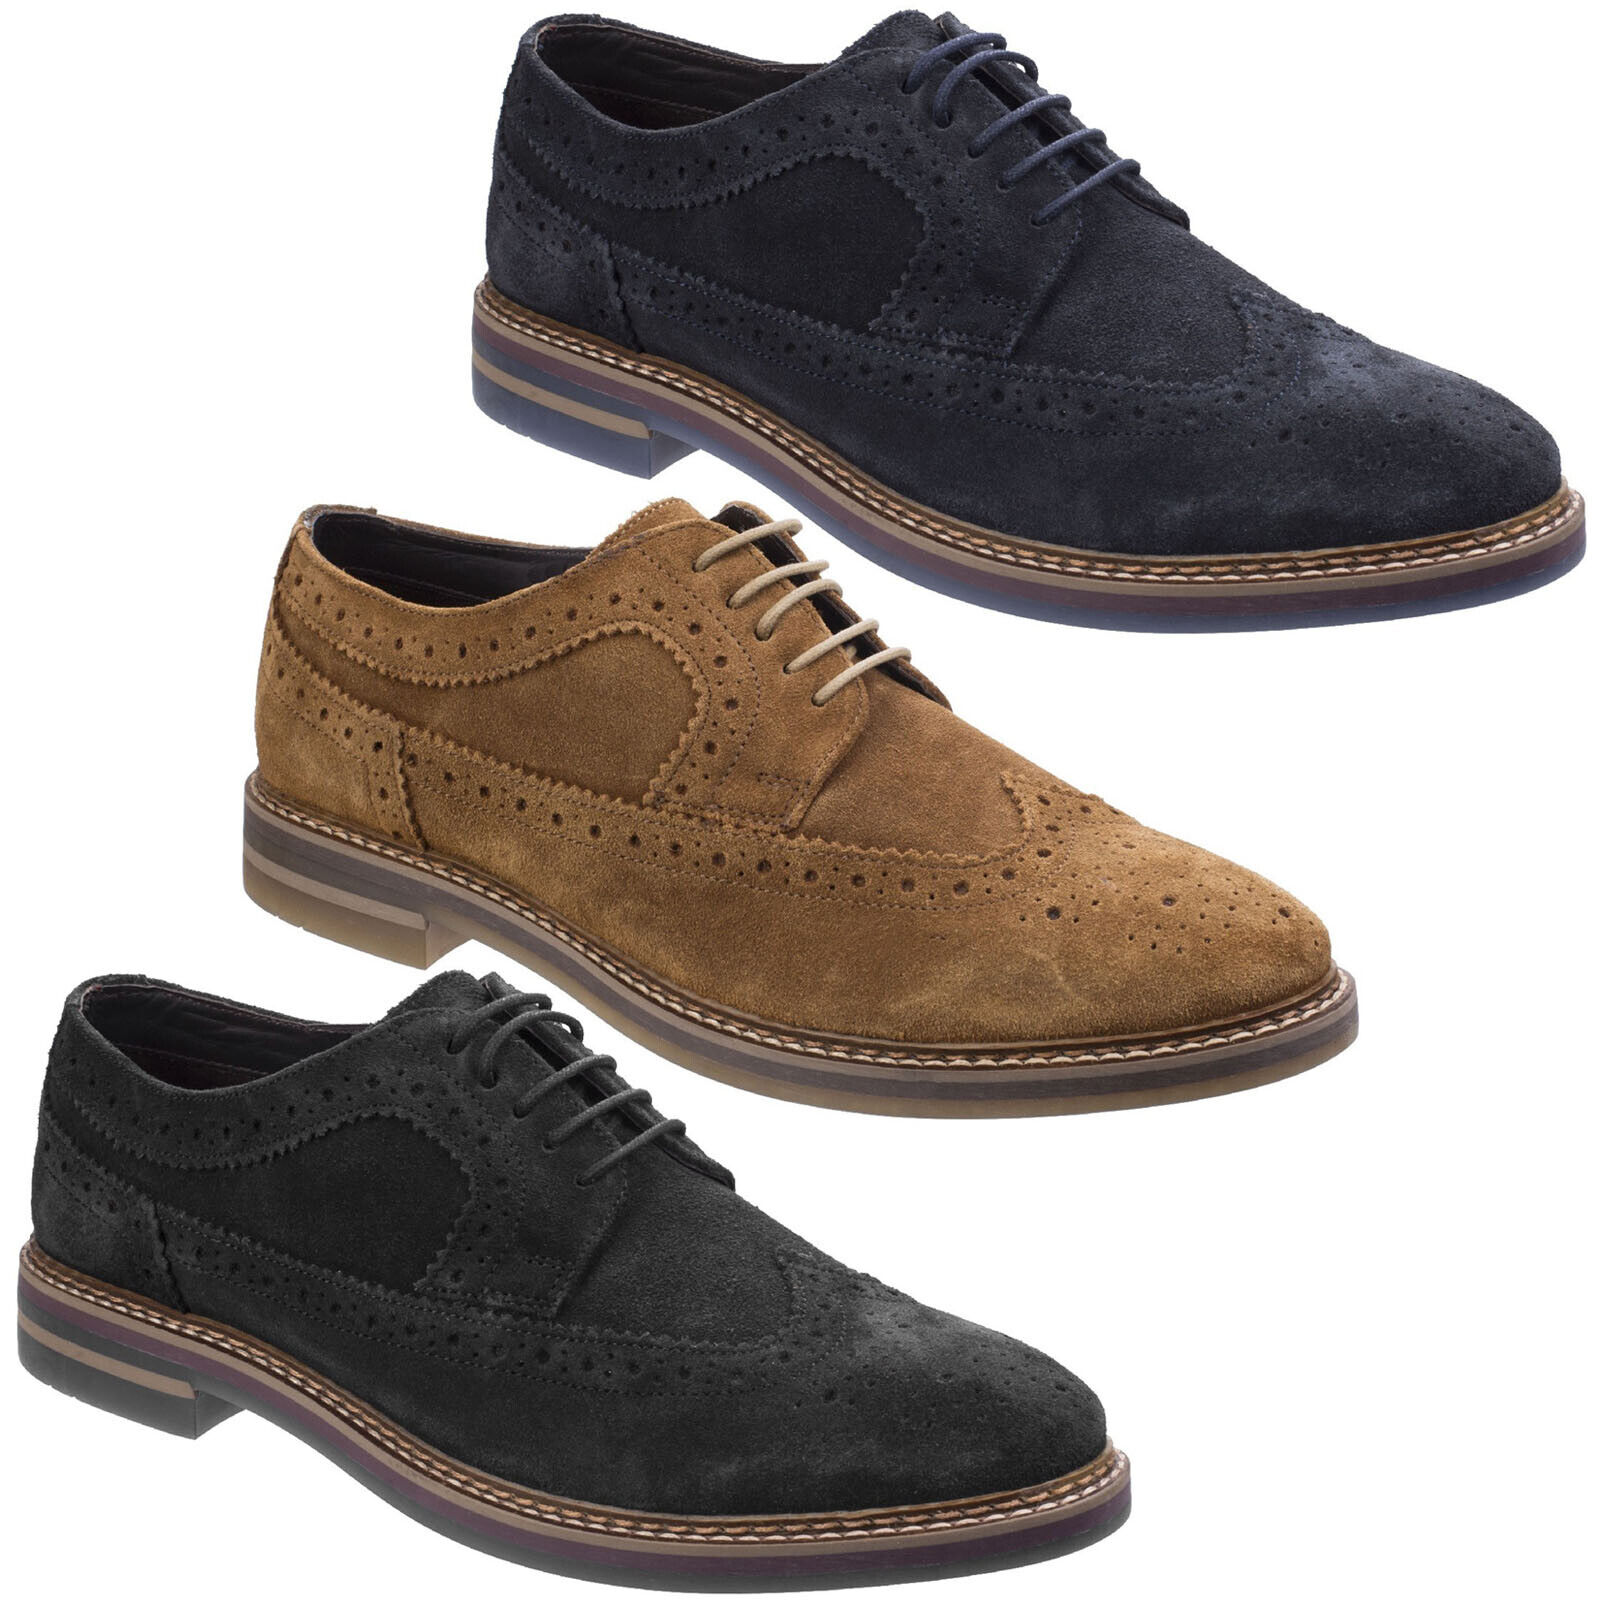 Base London Turner Mens Brogue schuhe Formal Derby Suede Leather Lace Up Smart